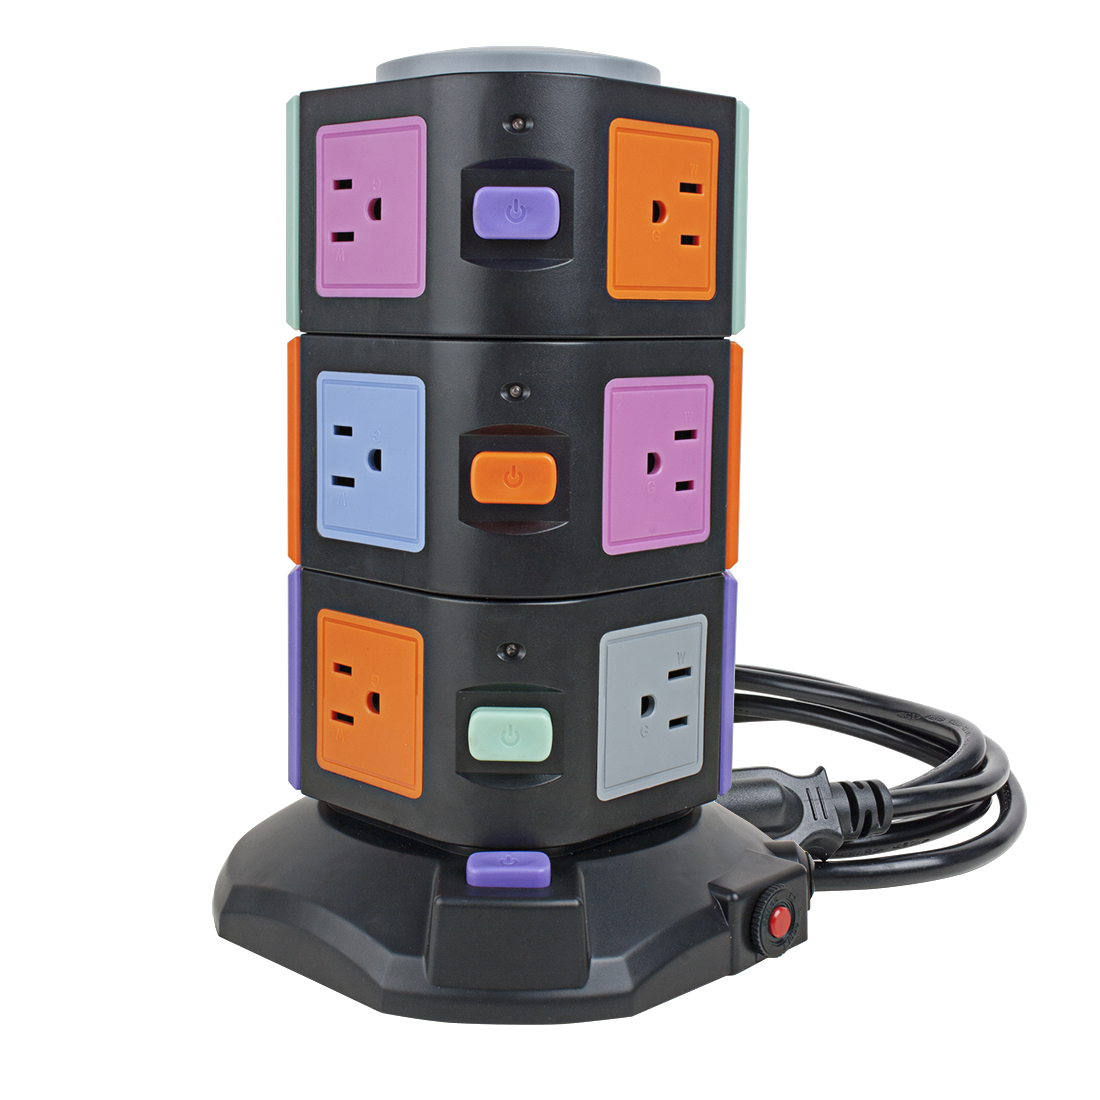 Vertical Power Strip 1.8M/70inches Power Extension Cord 10 3Pin Outlet 4 Smart USB Ports Socket with Overload Protection 3000W